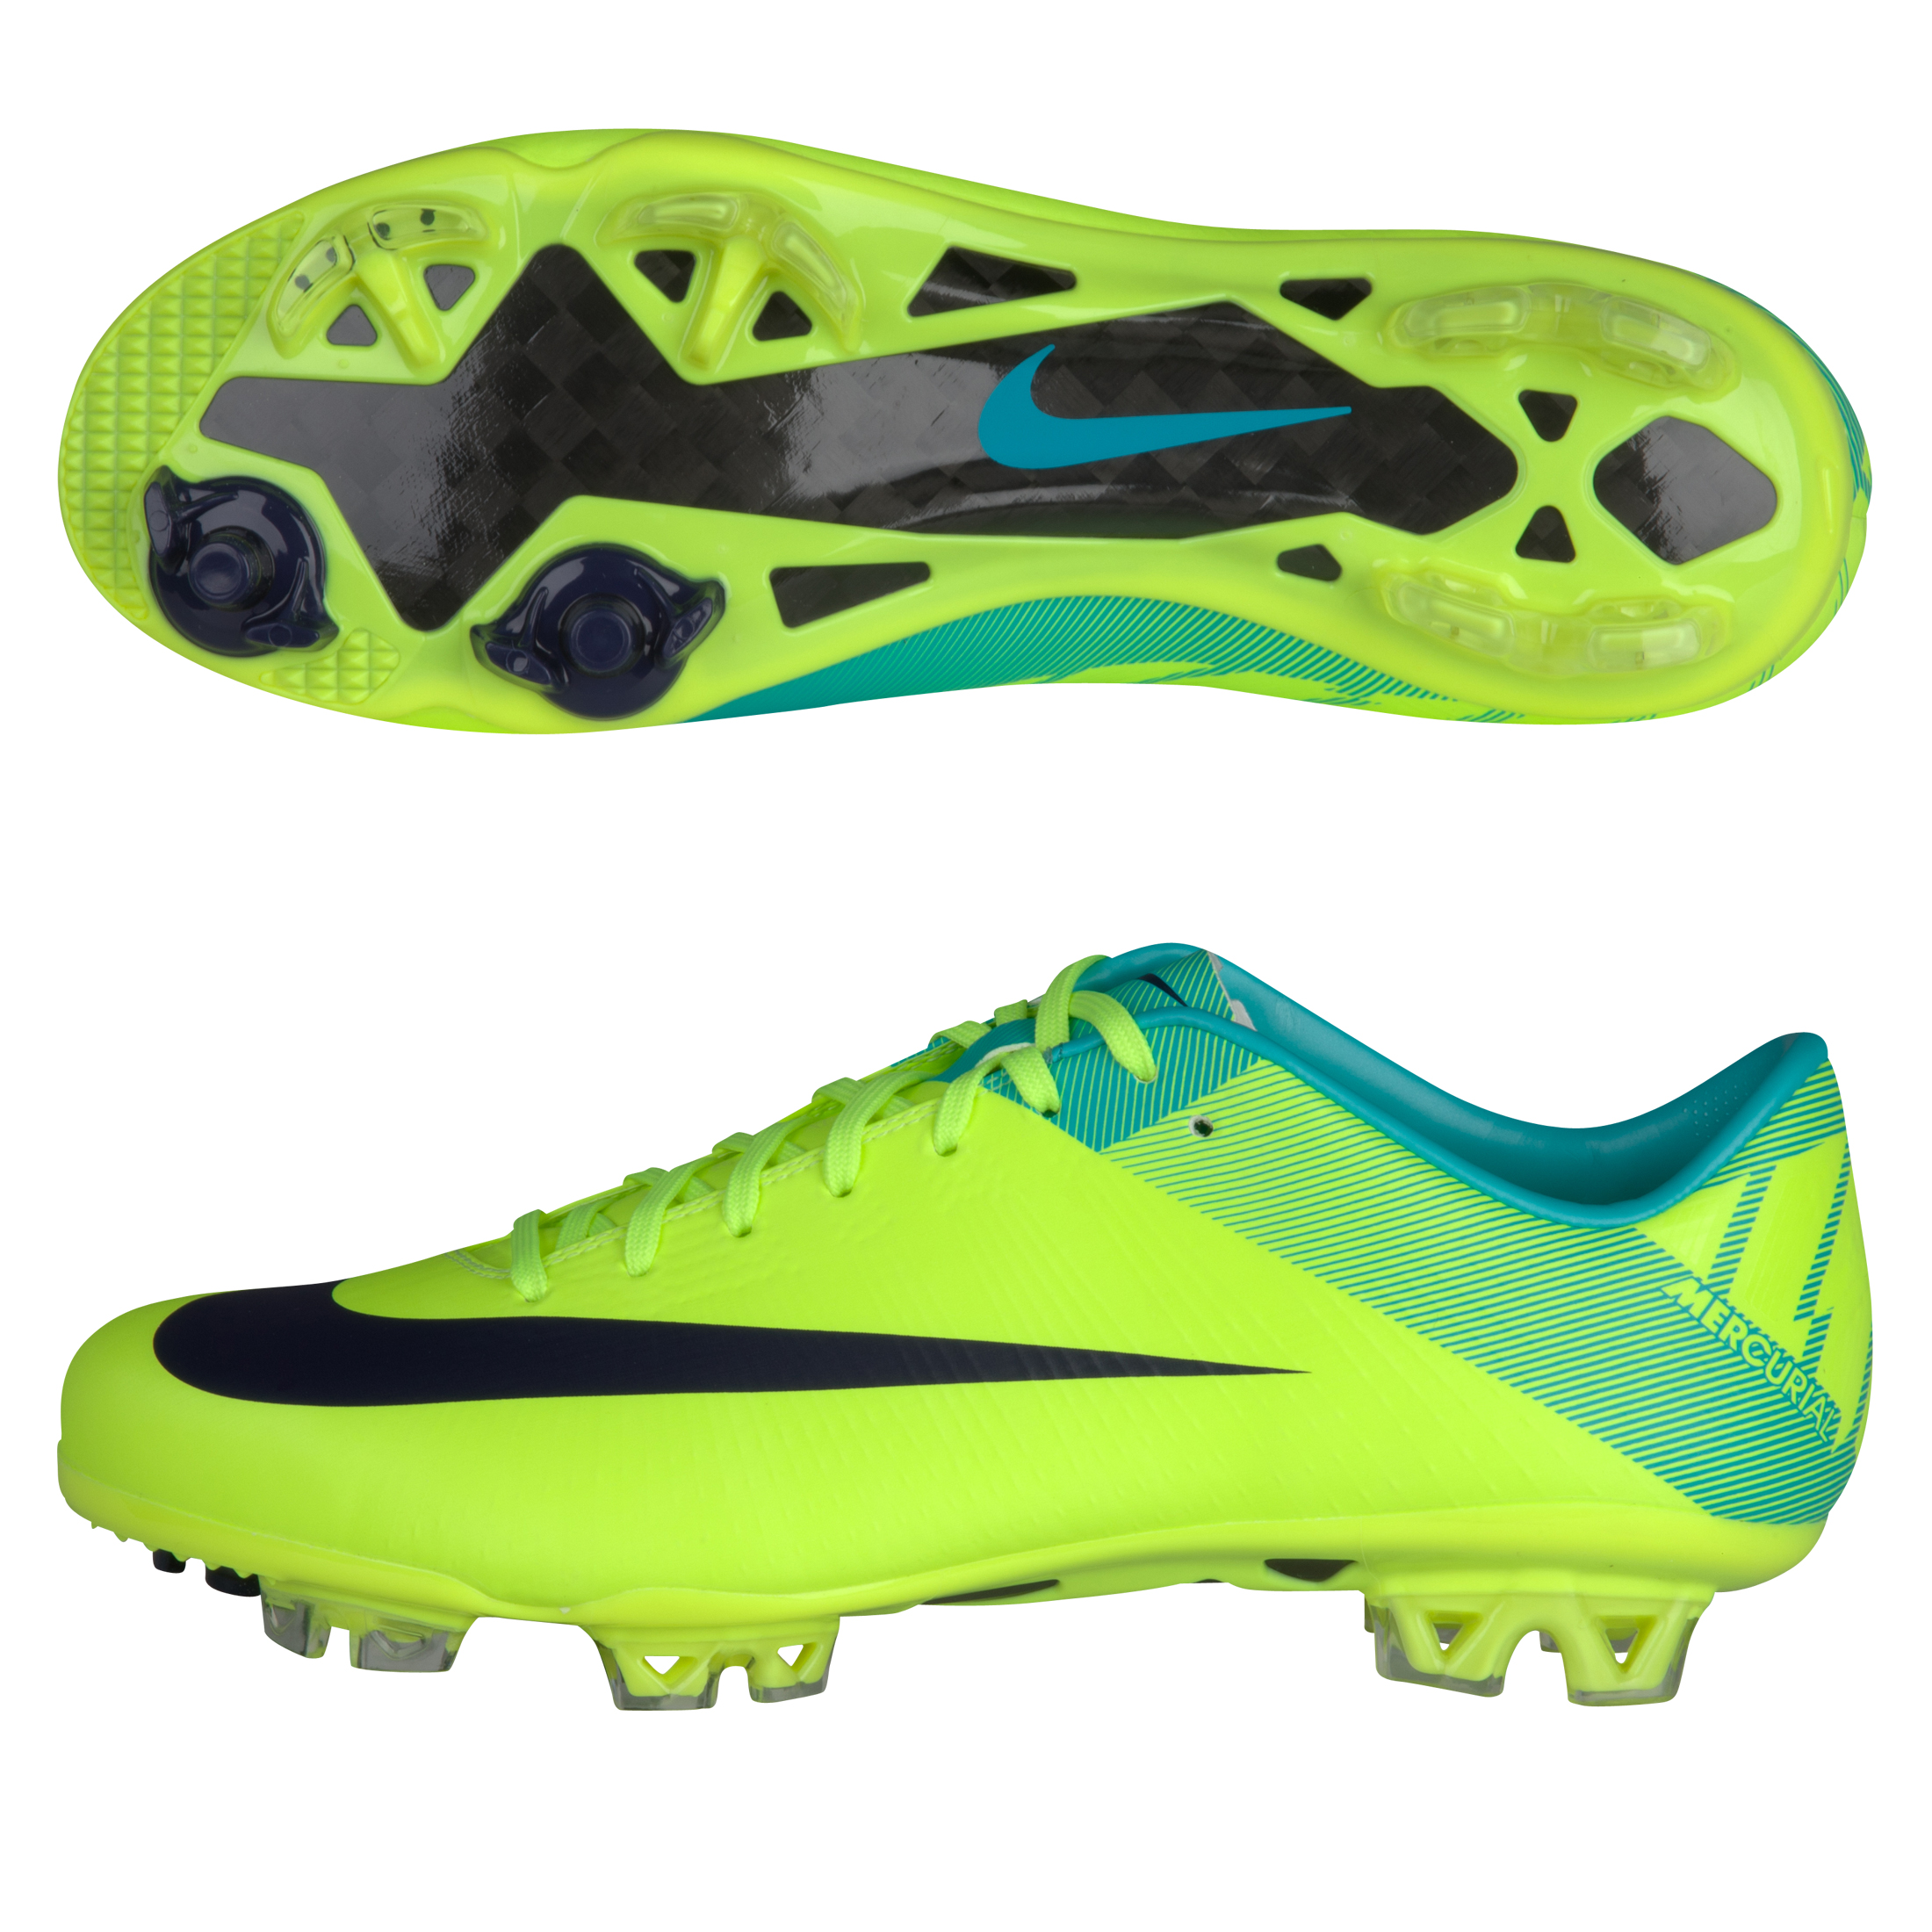 Nike Mercurial Vapor Superfly III Firm Ground Football Boots - Volt/Imperial Purple-Retro